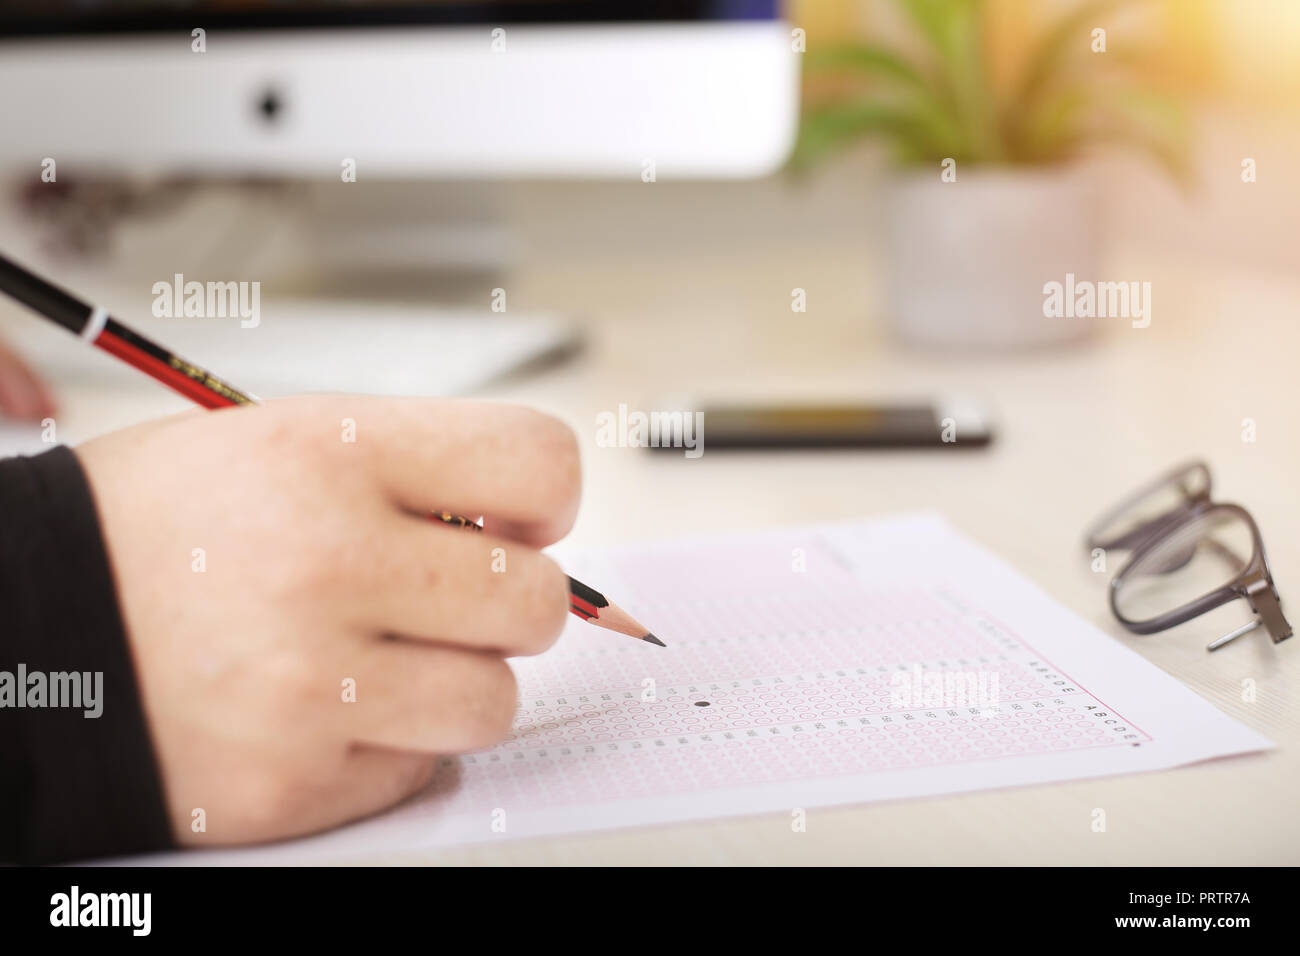 Exam omr sheet with pencil and glasses. - Stock Image